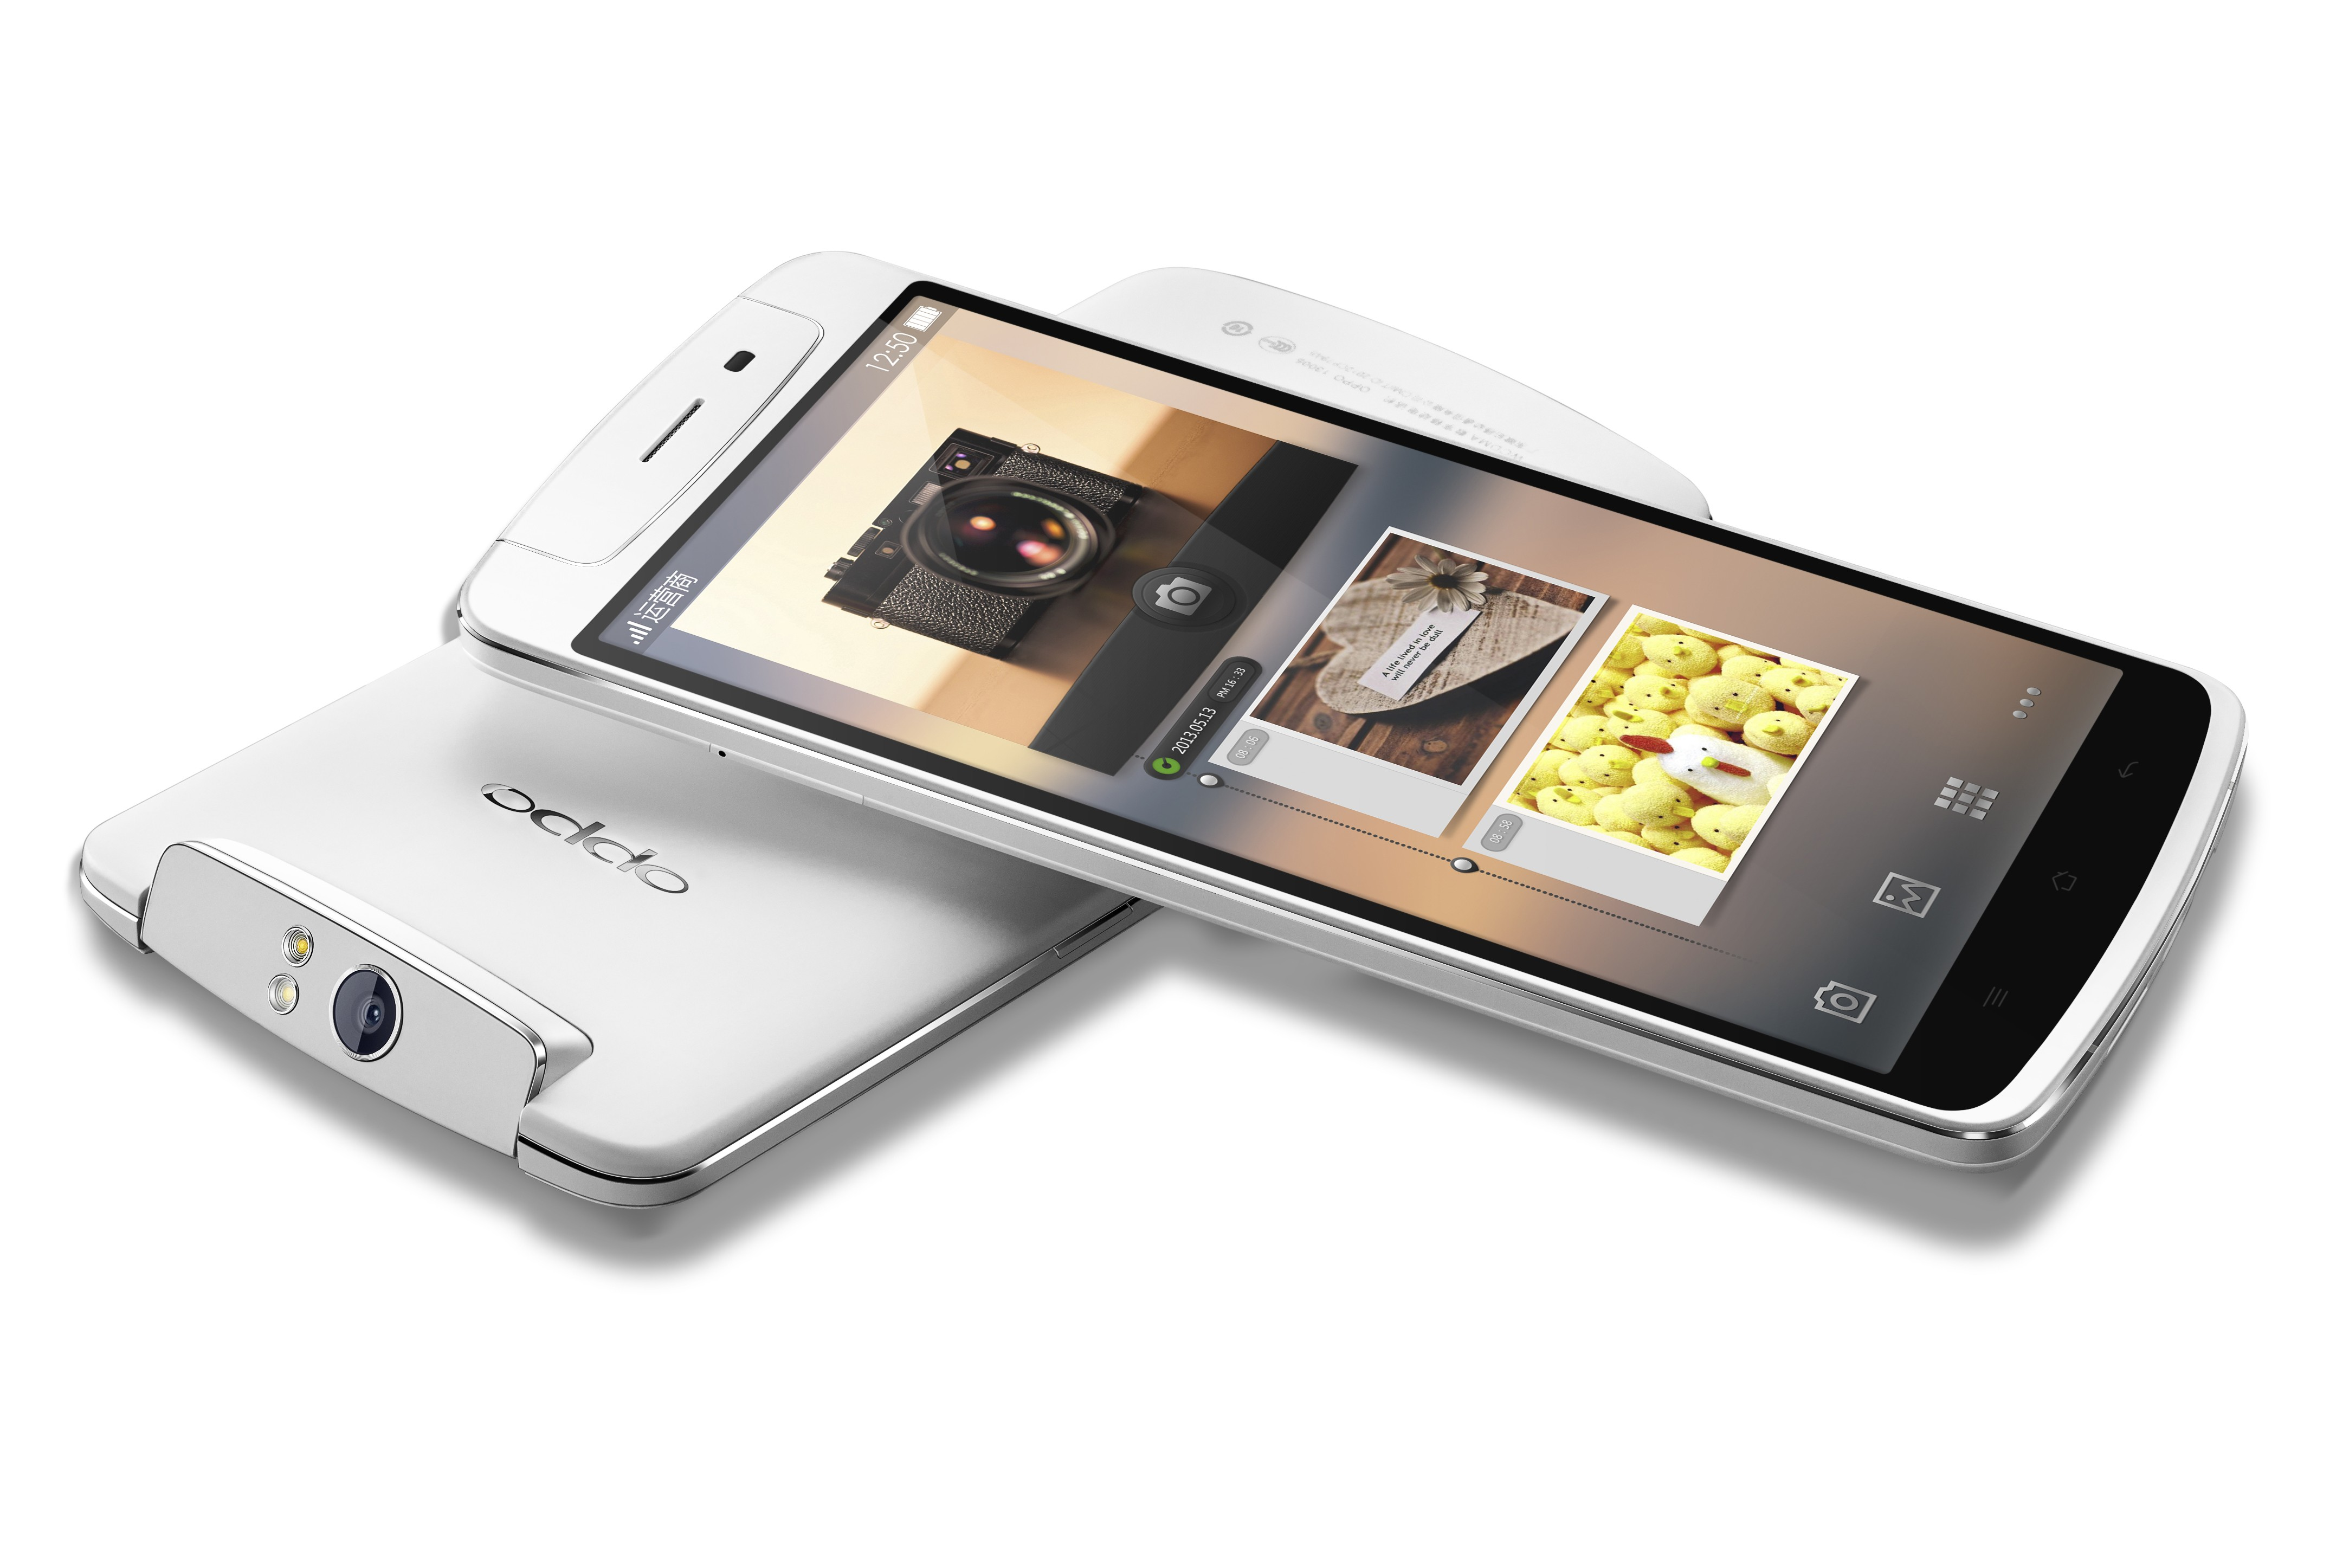 Hands On: Oppo N1 stands out from the crowd